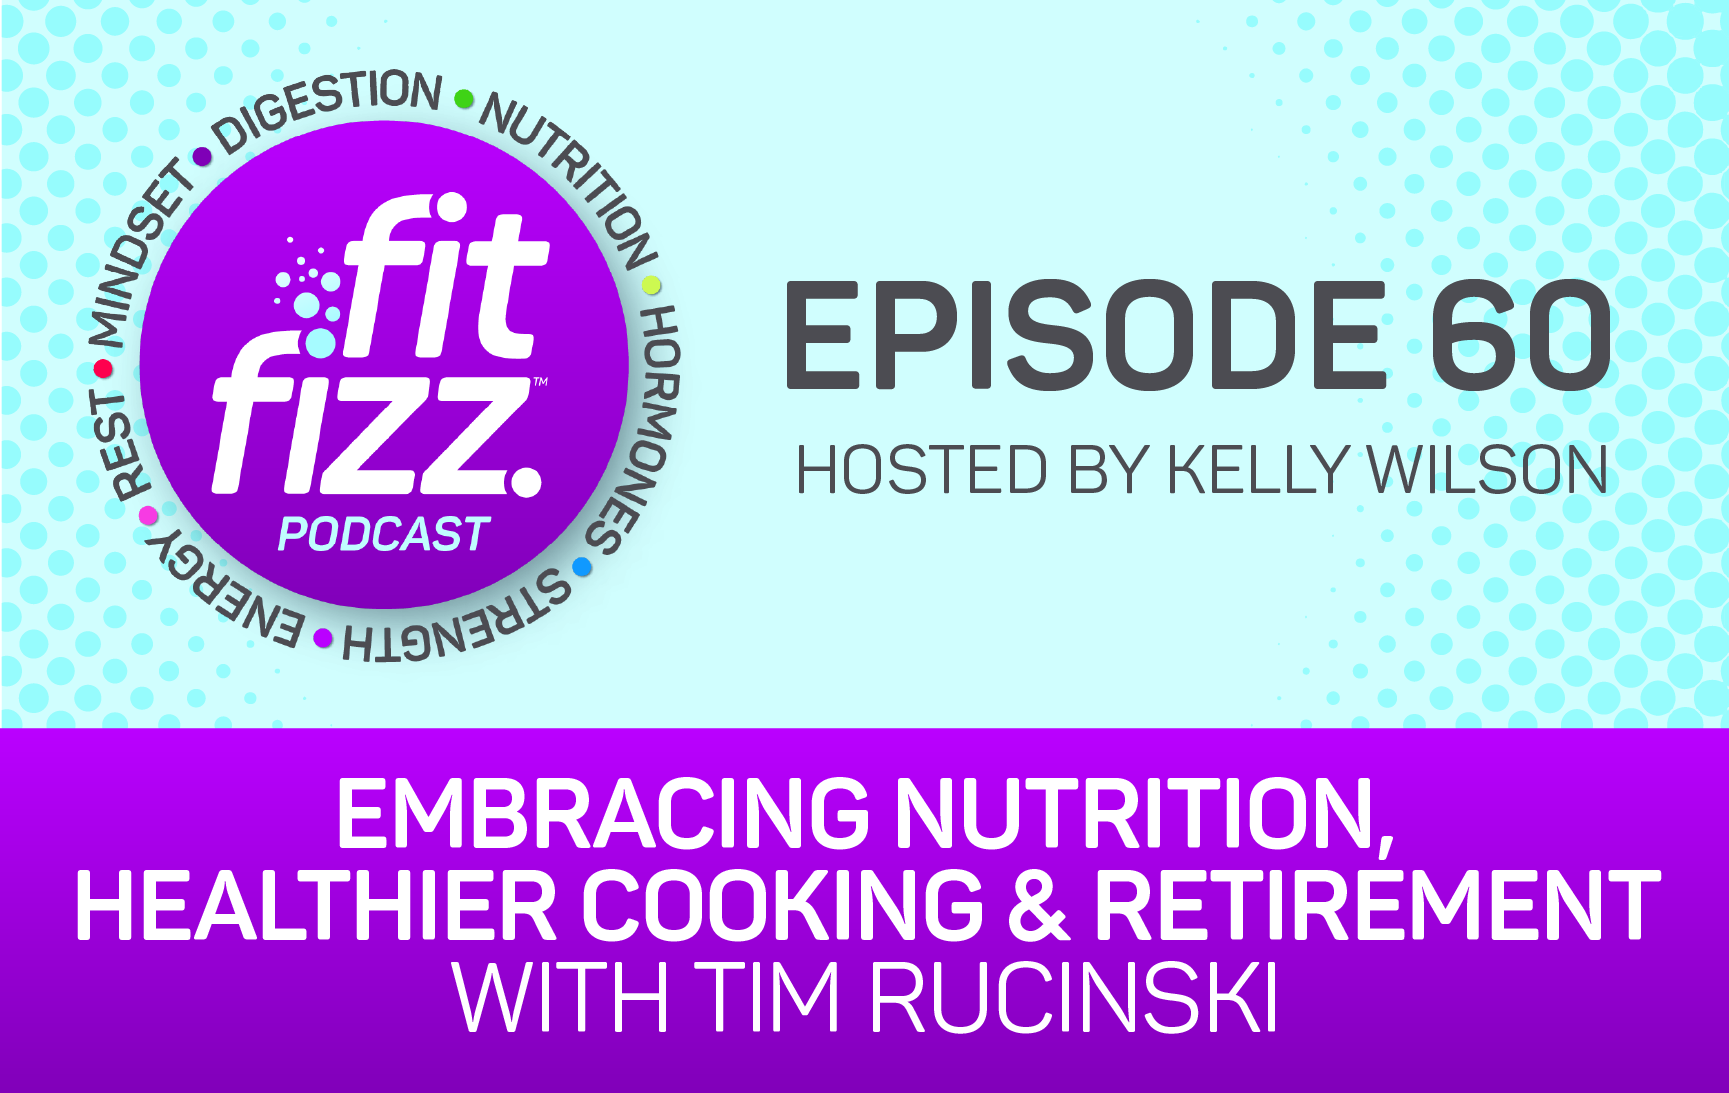 Ep. 60: Embracing Nutrition, Healthier Cooking and Retirement with Tim Rucinski